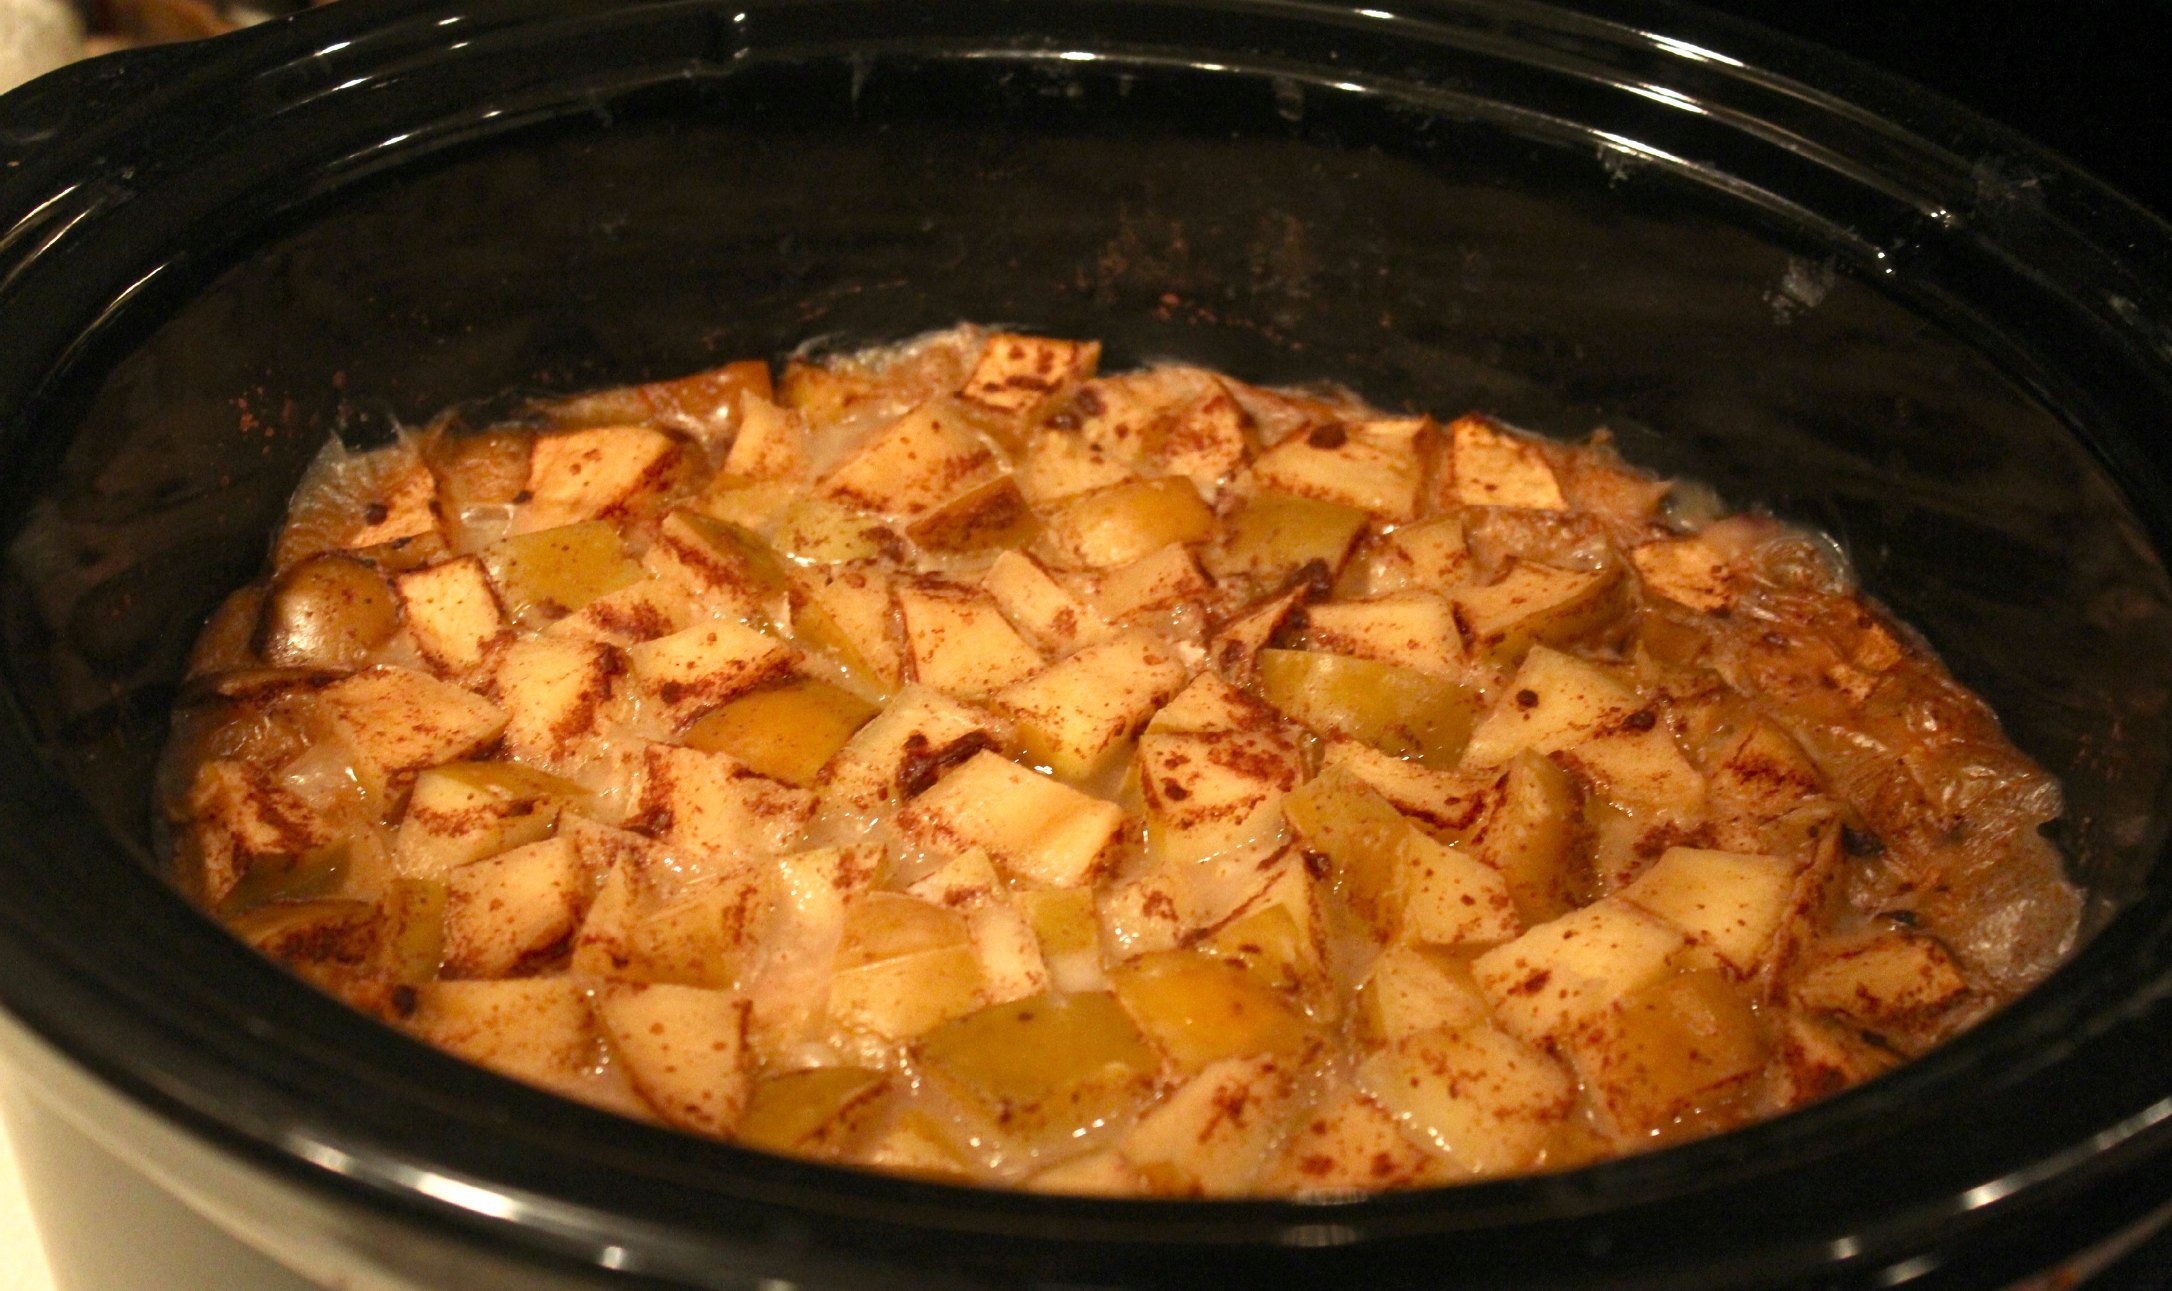 ... you tried any overnight crock pot recipes? What is your favorite(s